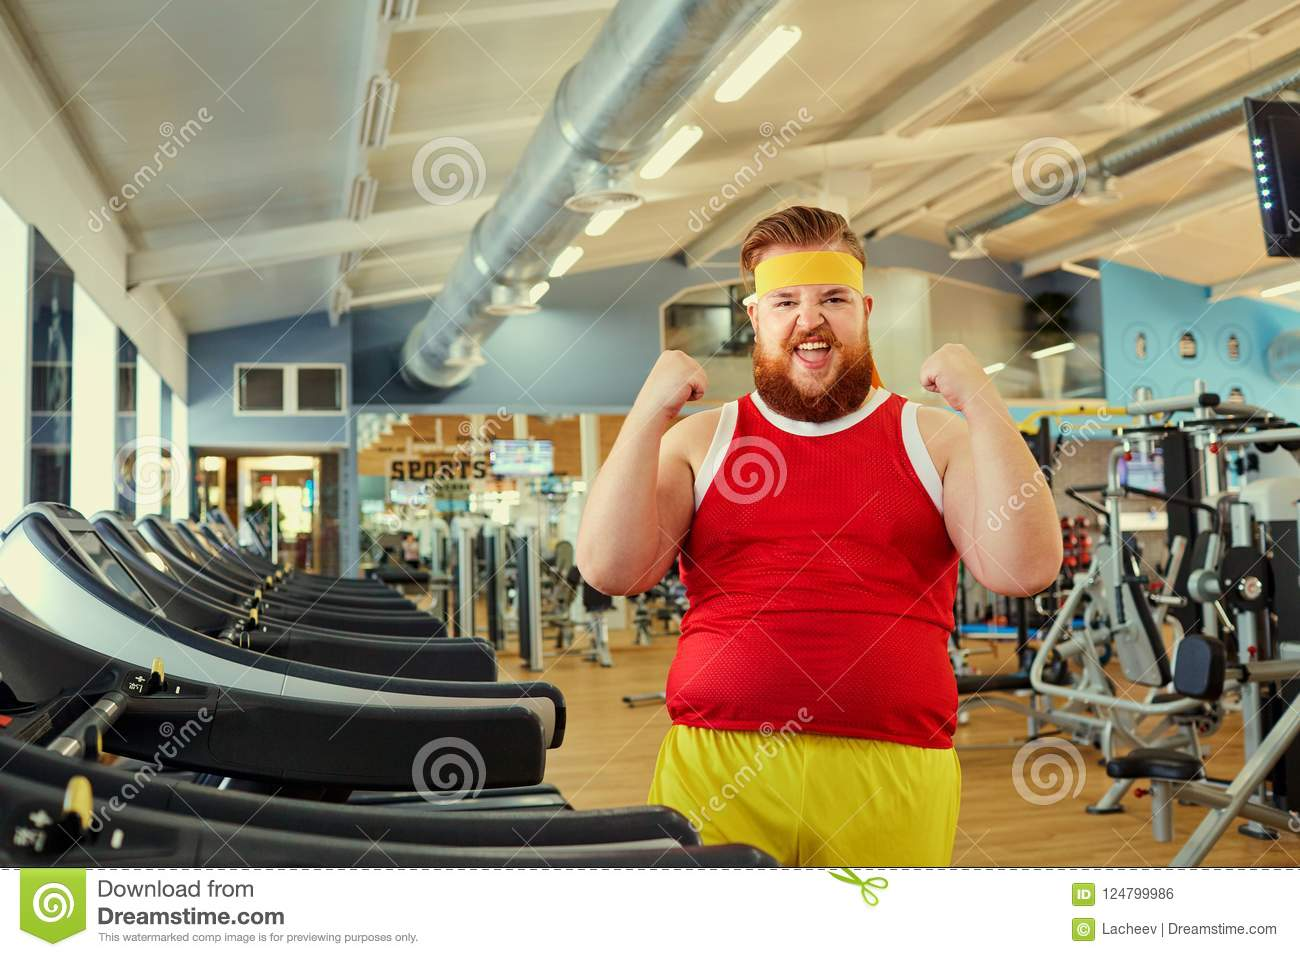 A Funny Fat Man Doing Exercises In The Gym Stock Photo Image Of Comic Smile 124799986